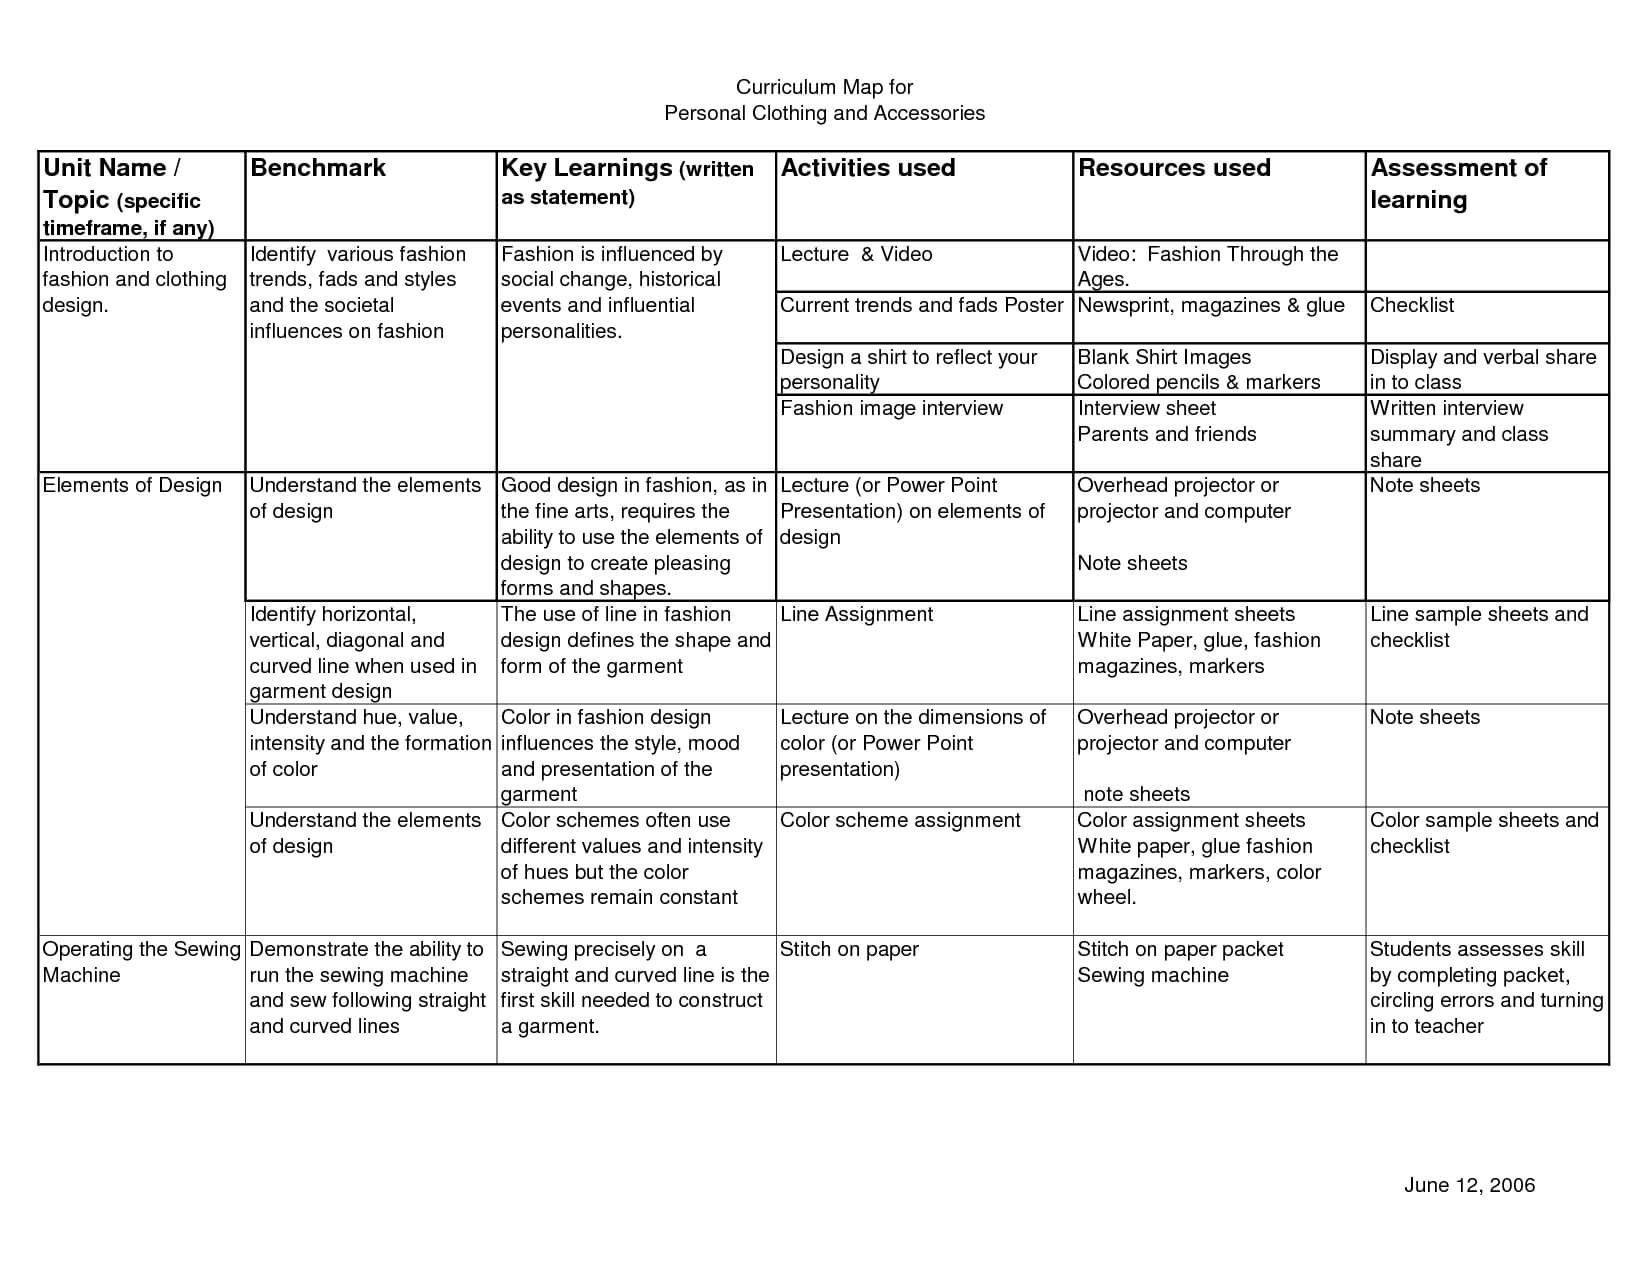 Blank Curriculum Map Template | Blank Color Wheel Worksheets For Blank Curriculum Map Template